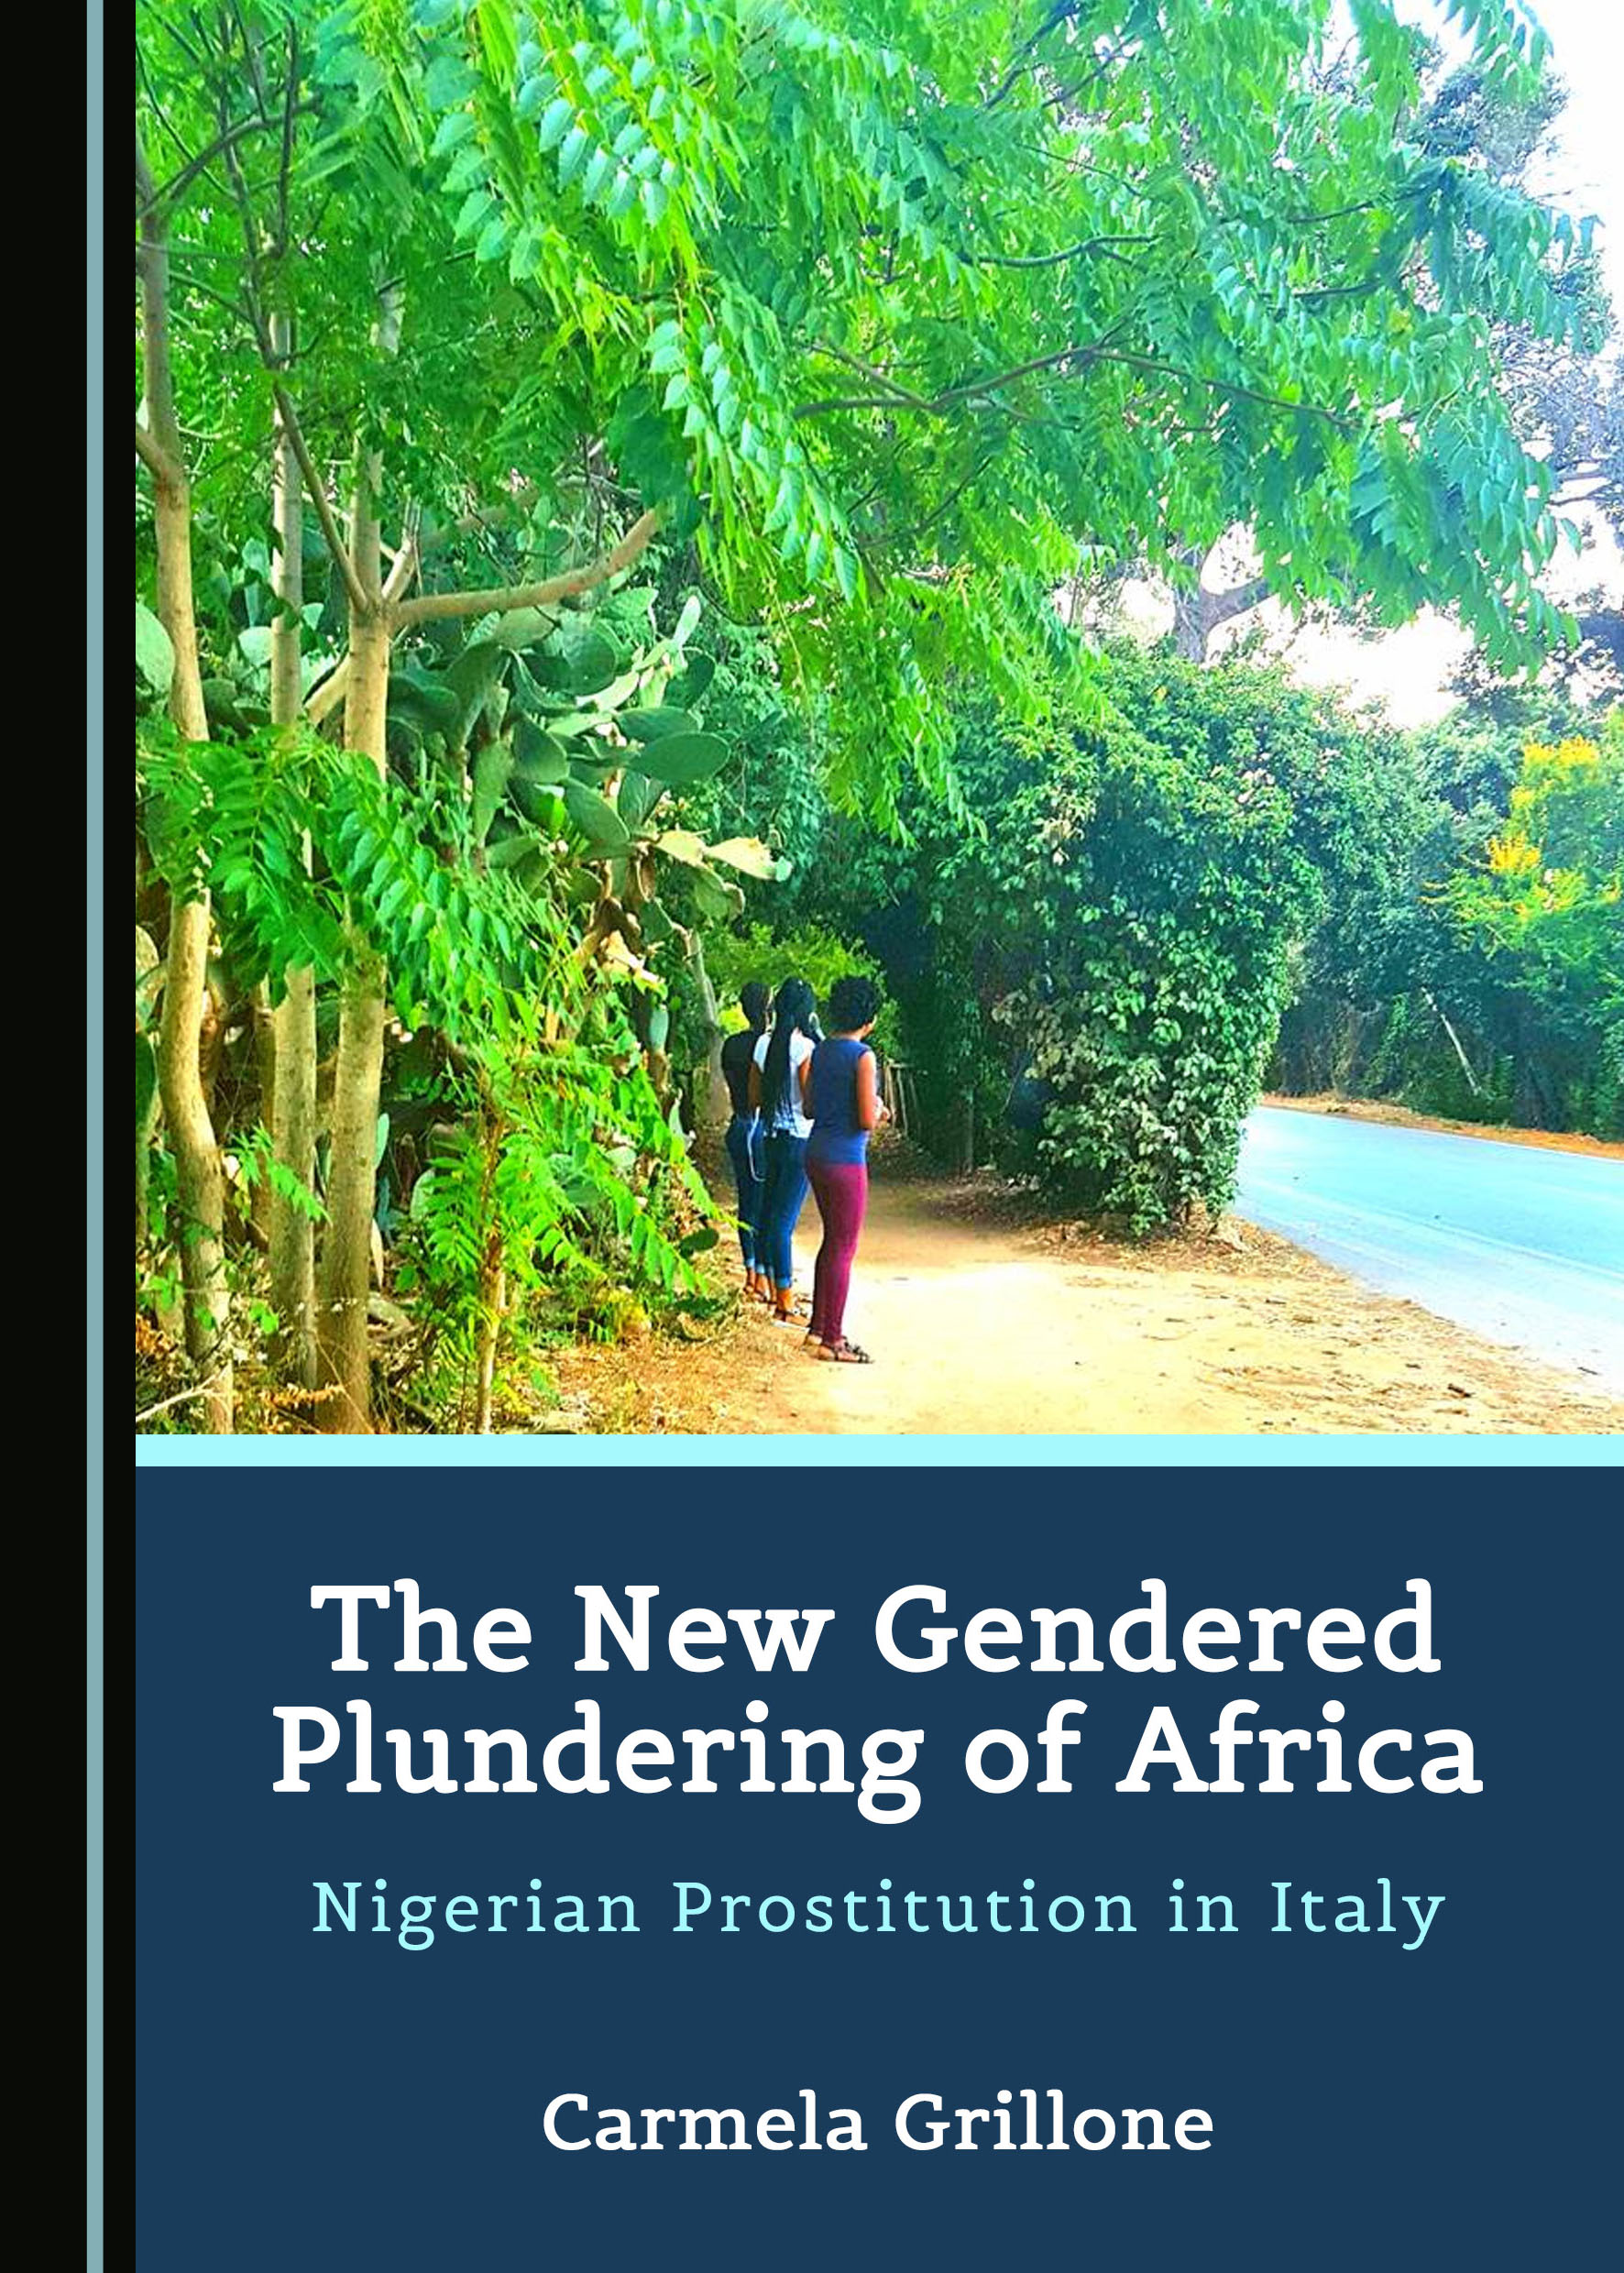 The New Gendered Plundering of Africa: Nigerian Prostitution in Italy